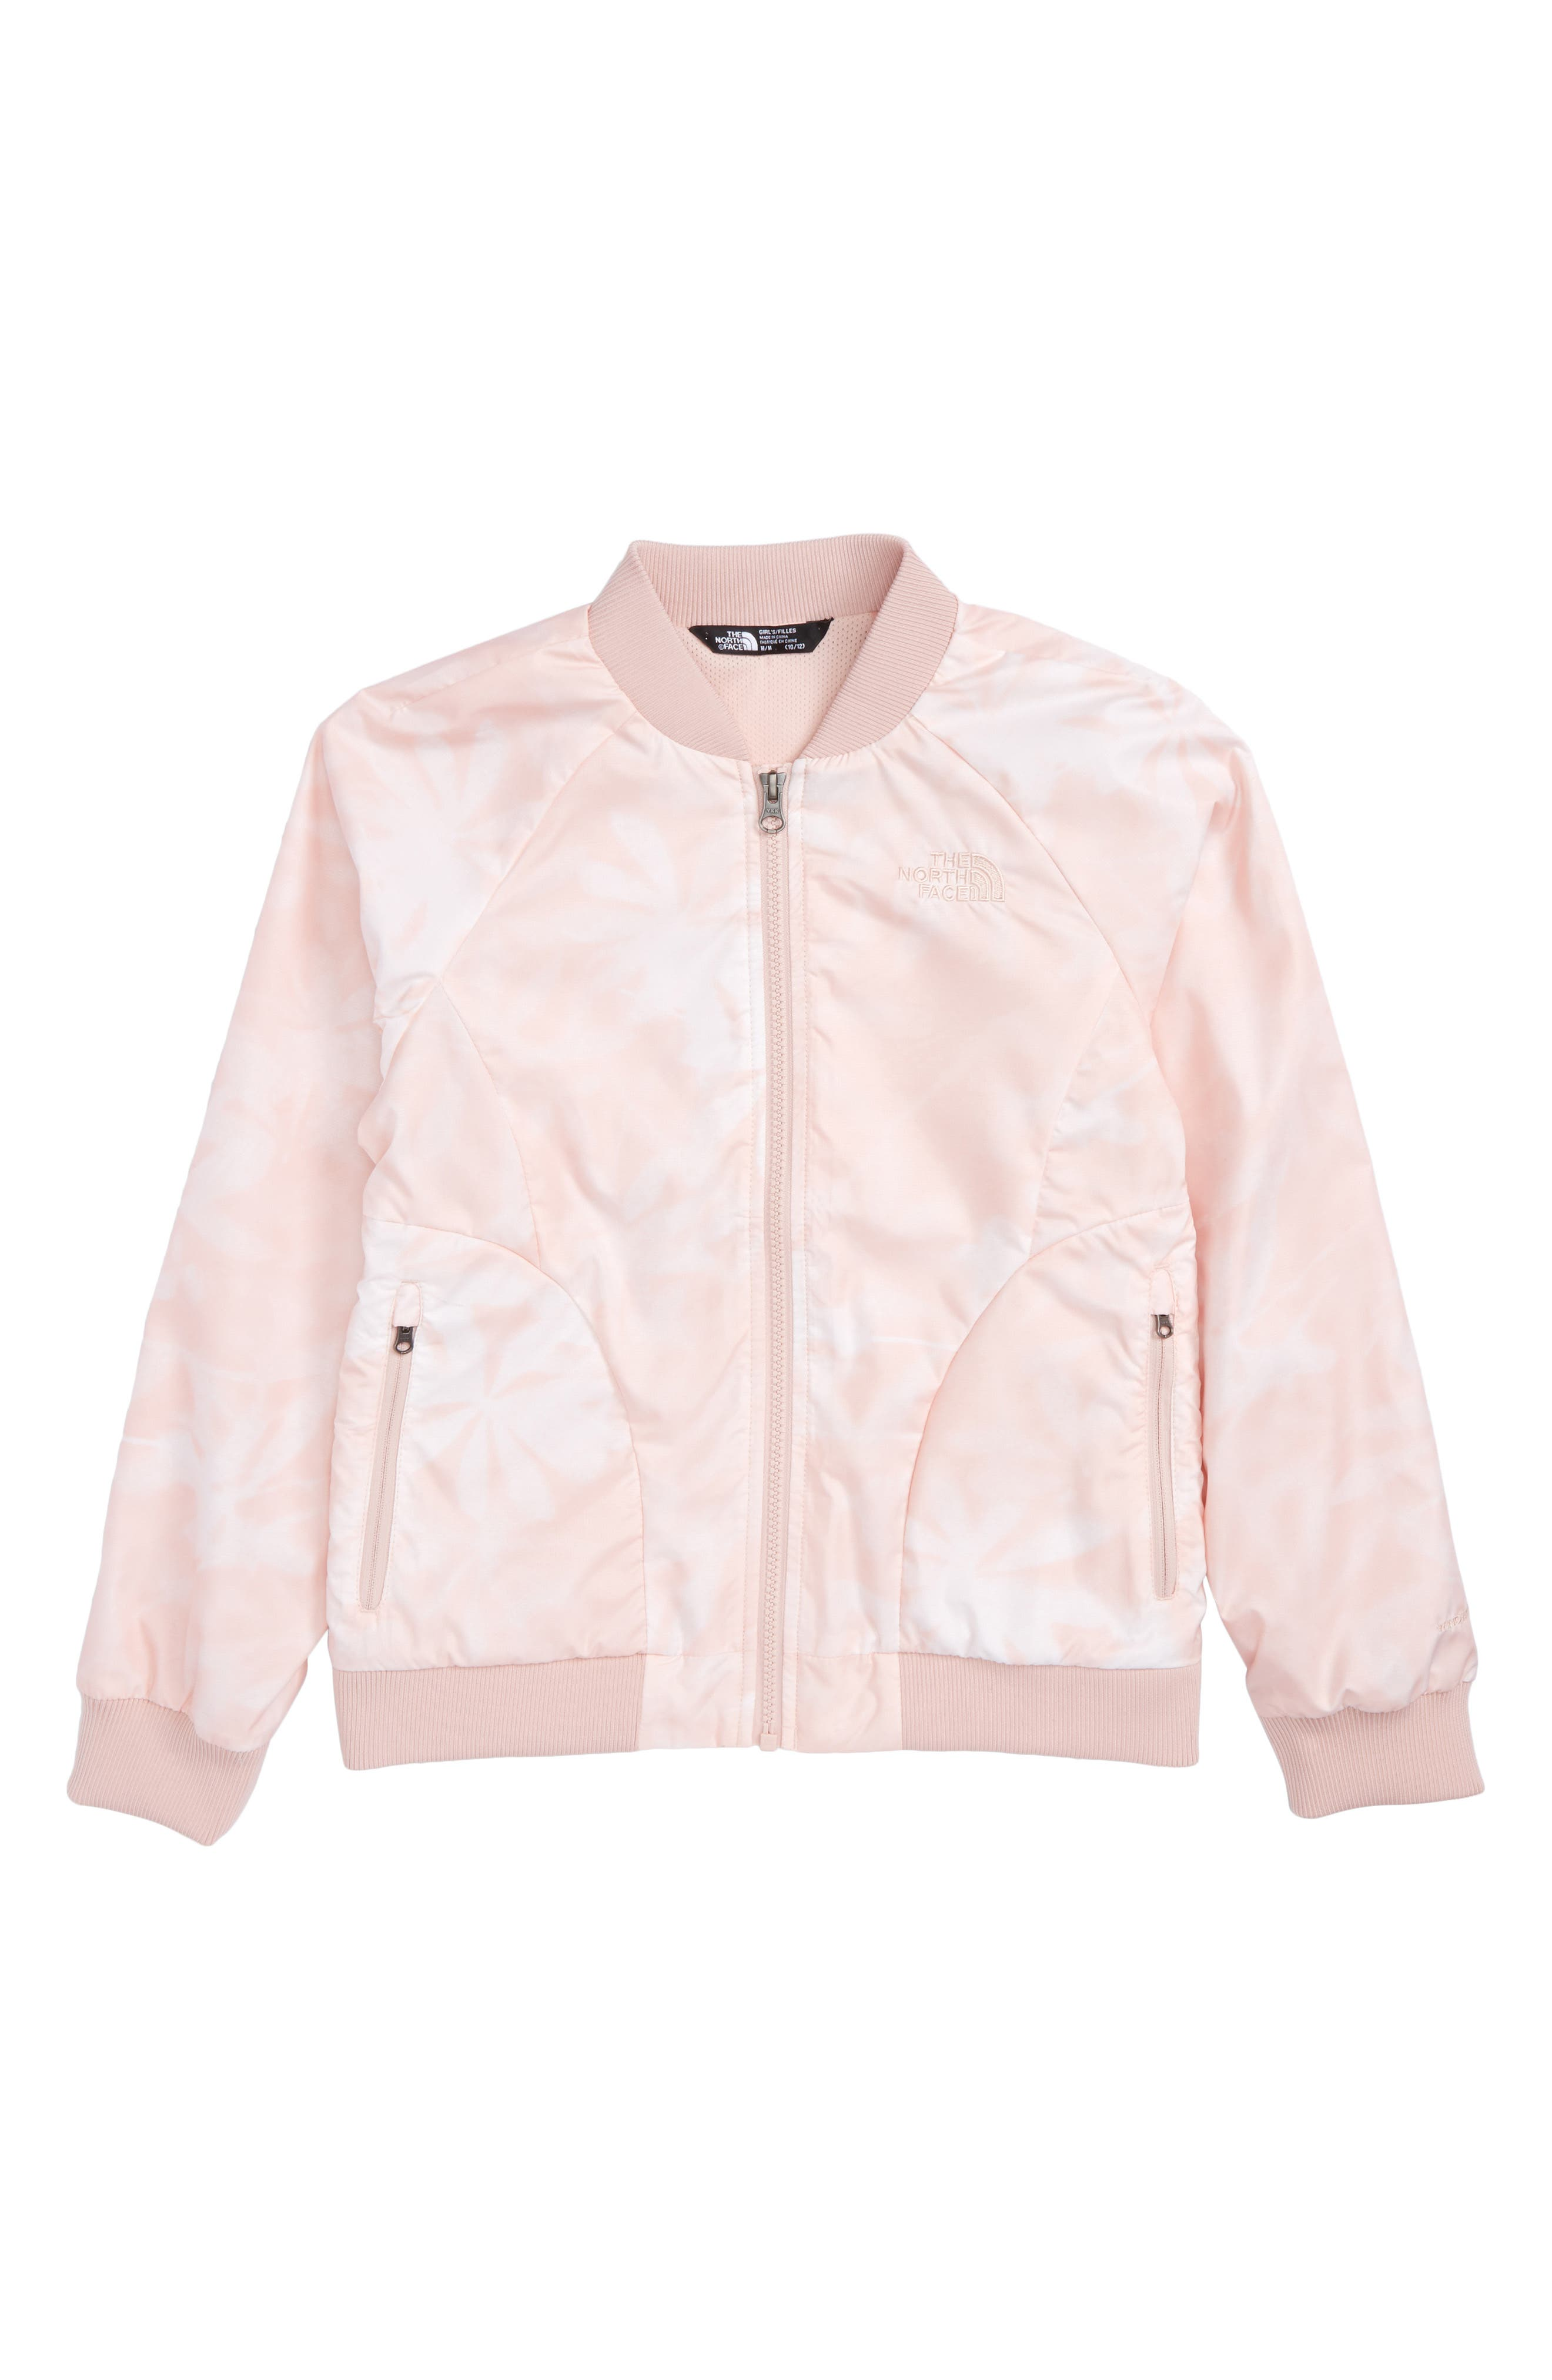 Flurry Windproof Bomber Jacket,                         Main,                         color, Evening Sand Pink Lupine Print